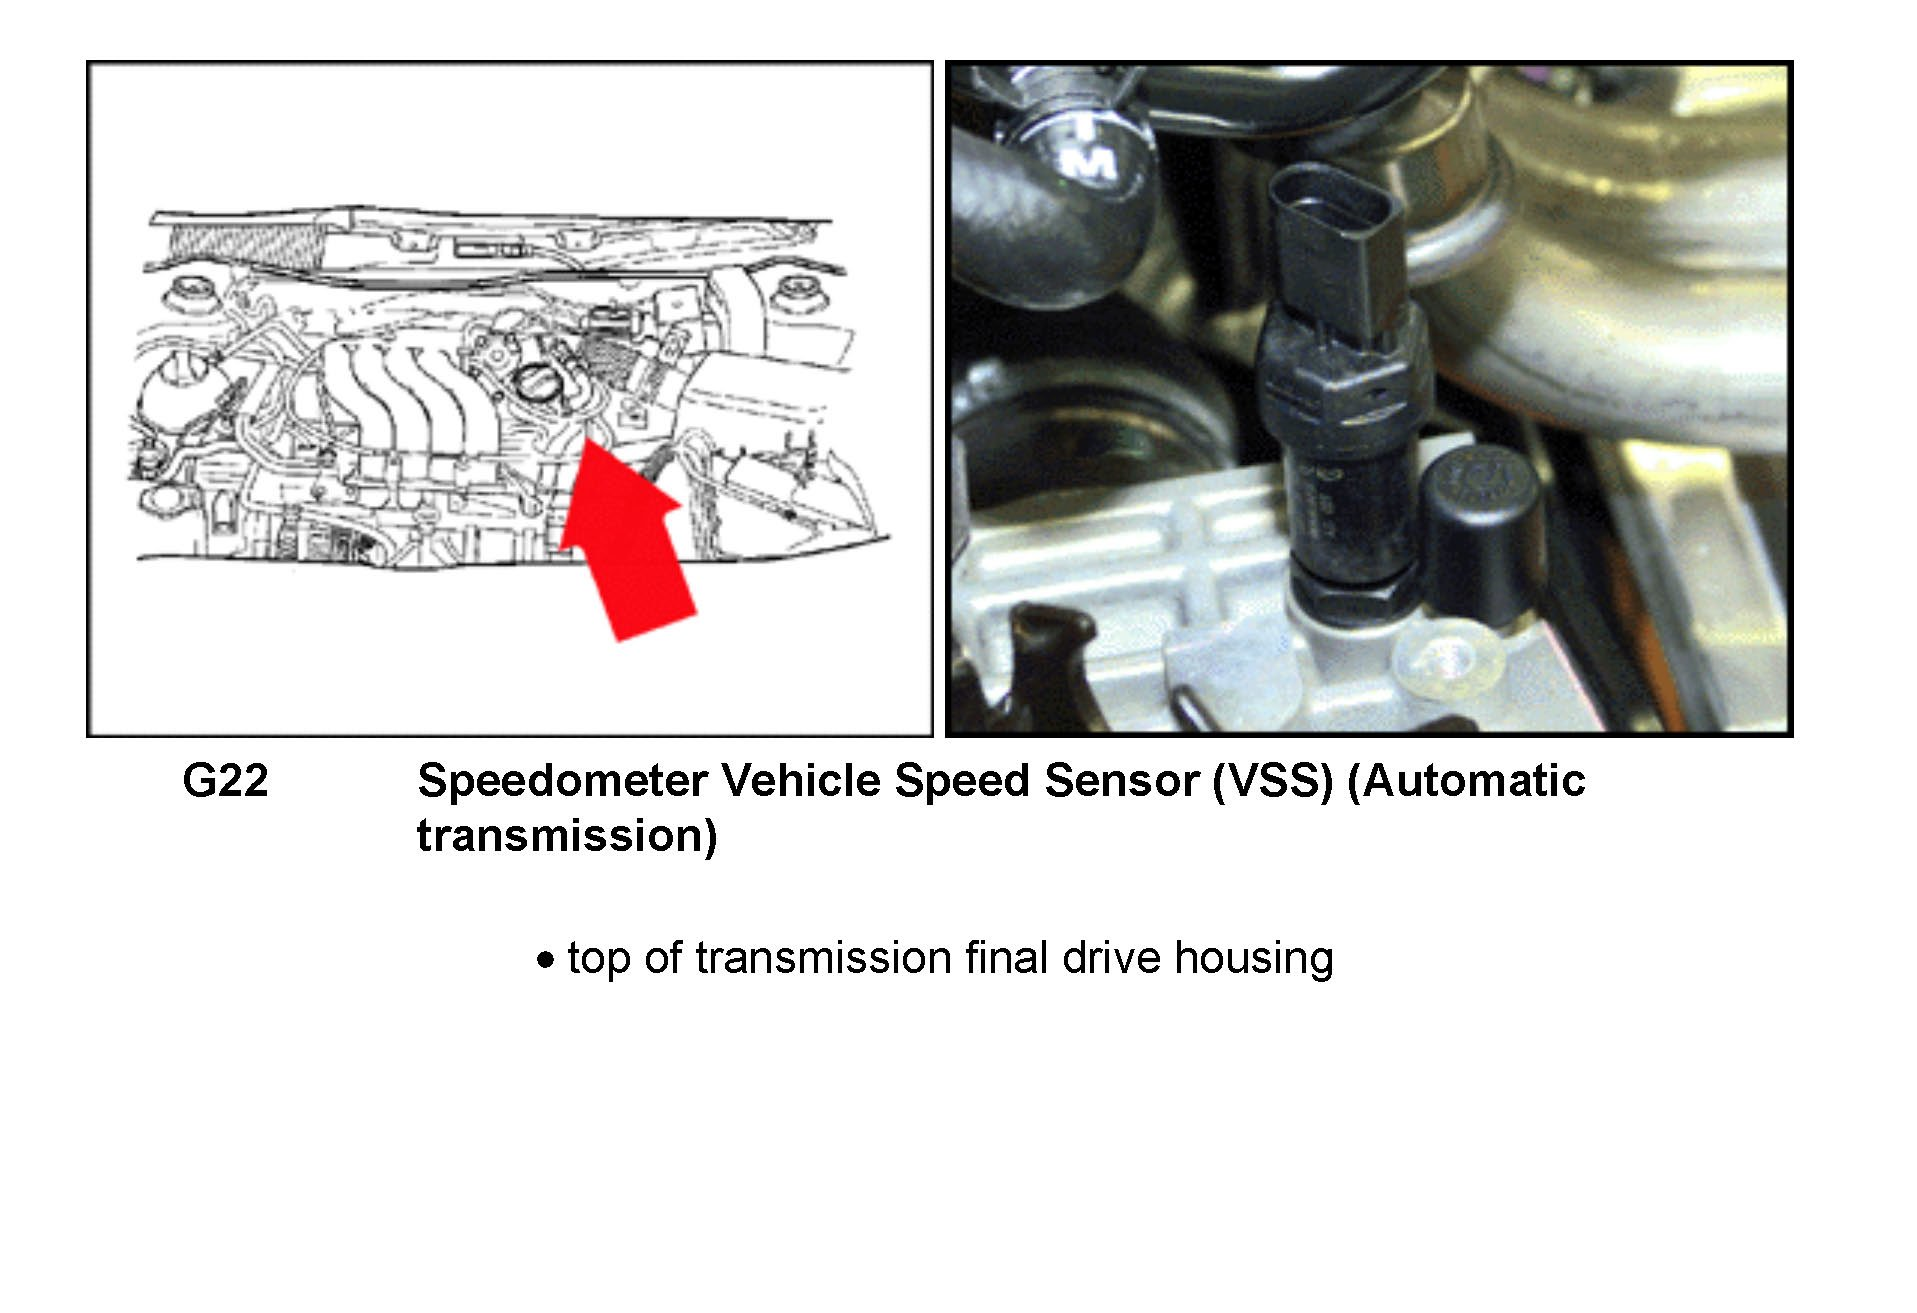 2001 Jetta Speedometer Sensor Wiring Diagram Archive Of Automotive 2002 Fuse Box 1 8t It Threw Code P0722 Accompanied With Hard Shifts Rh Justanswer Com